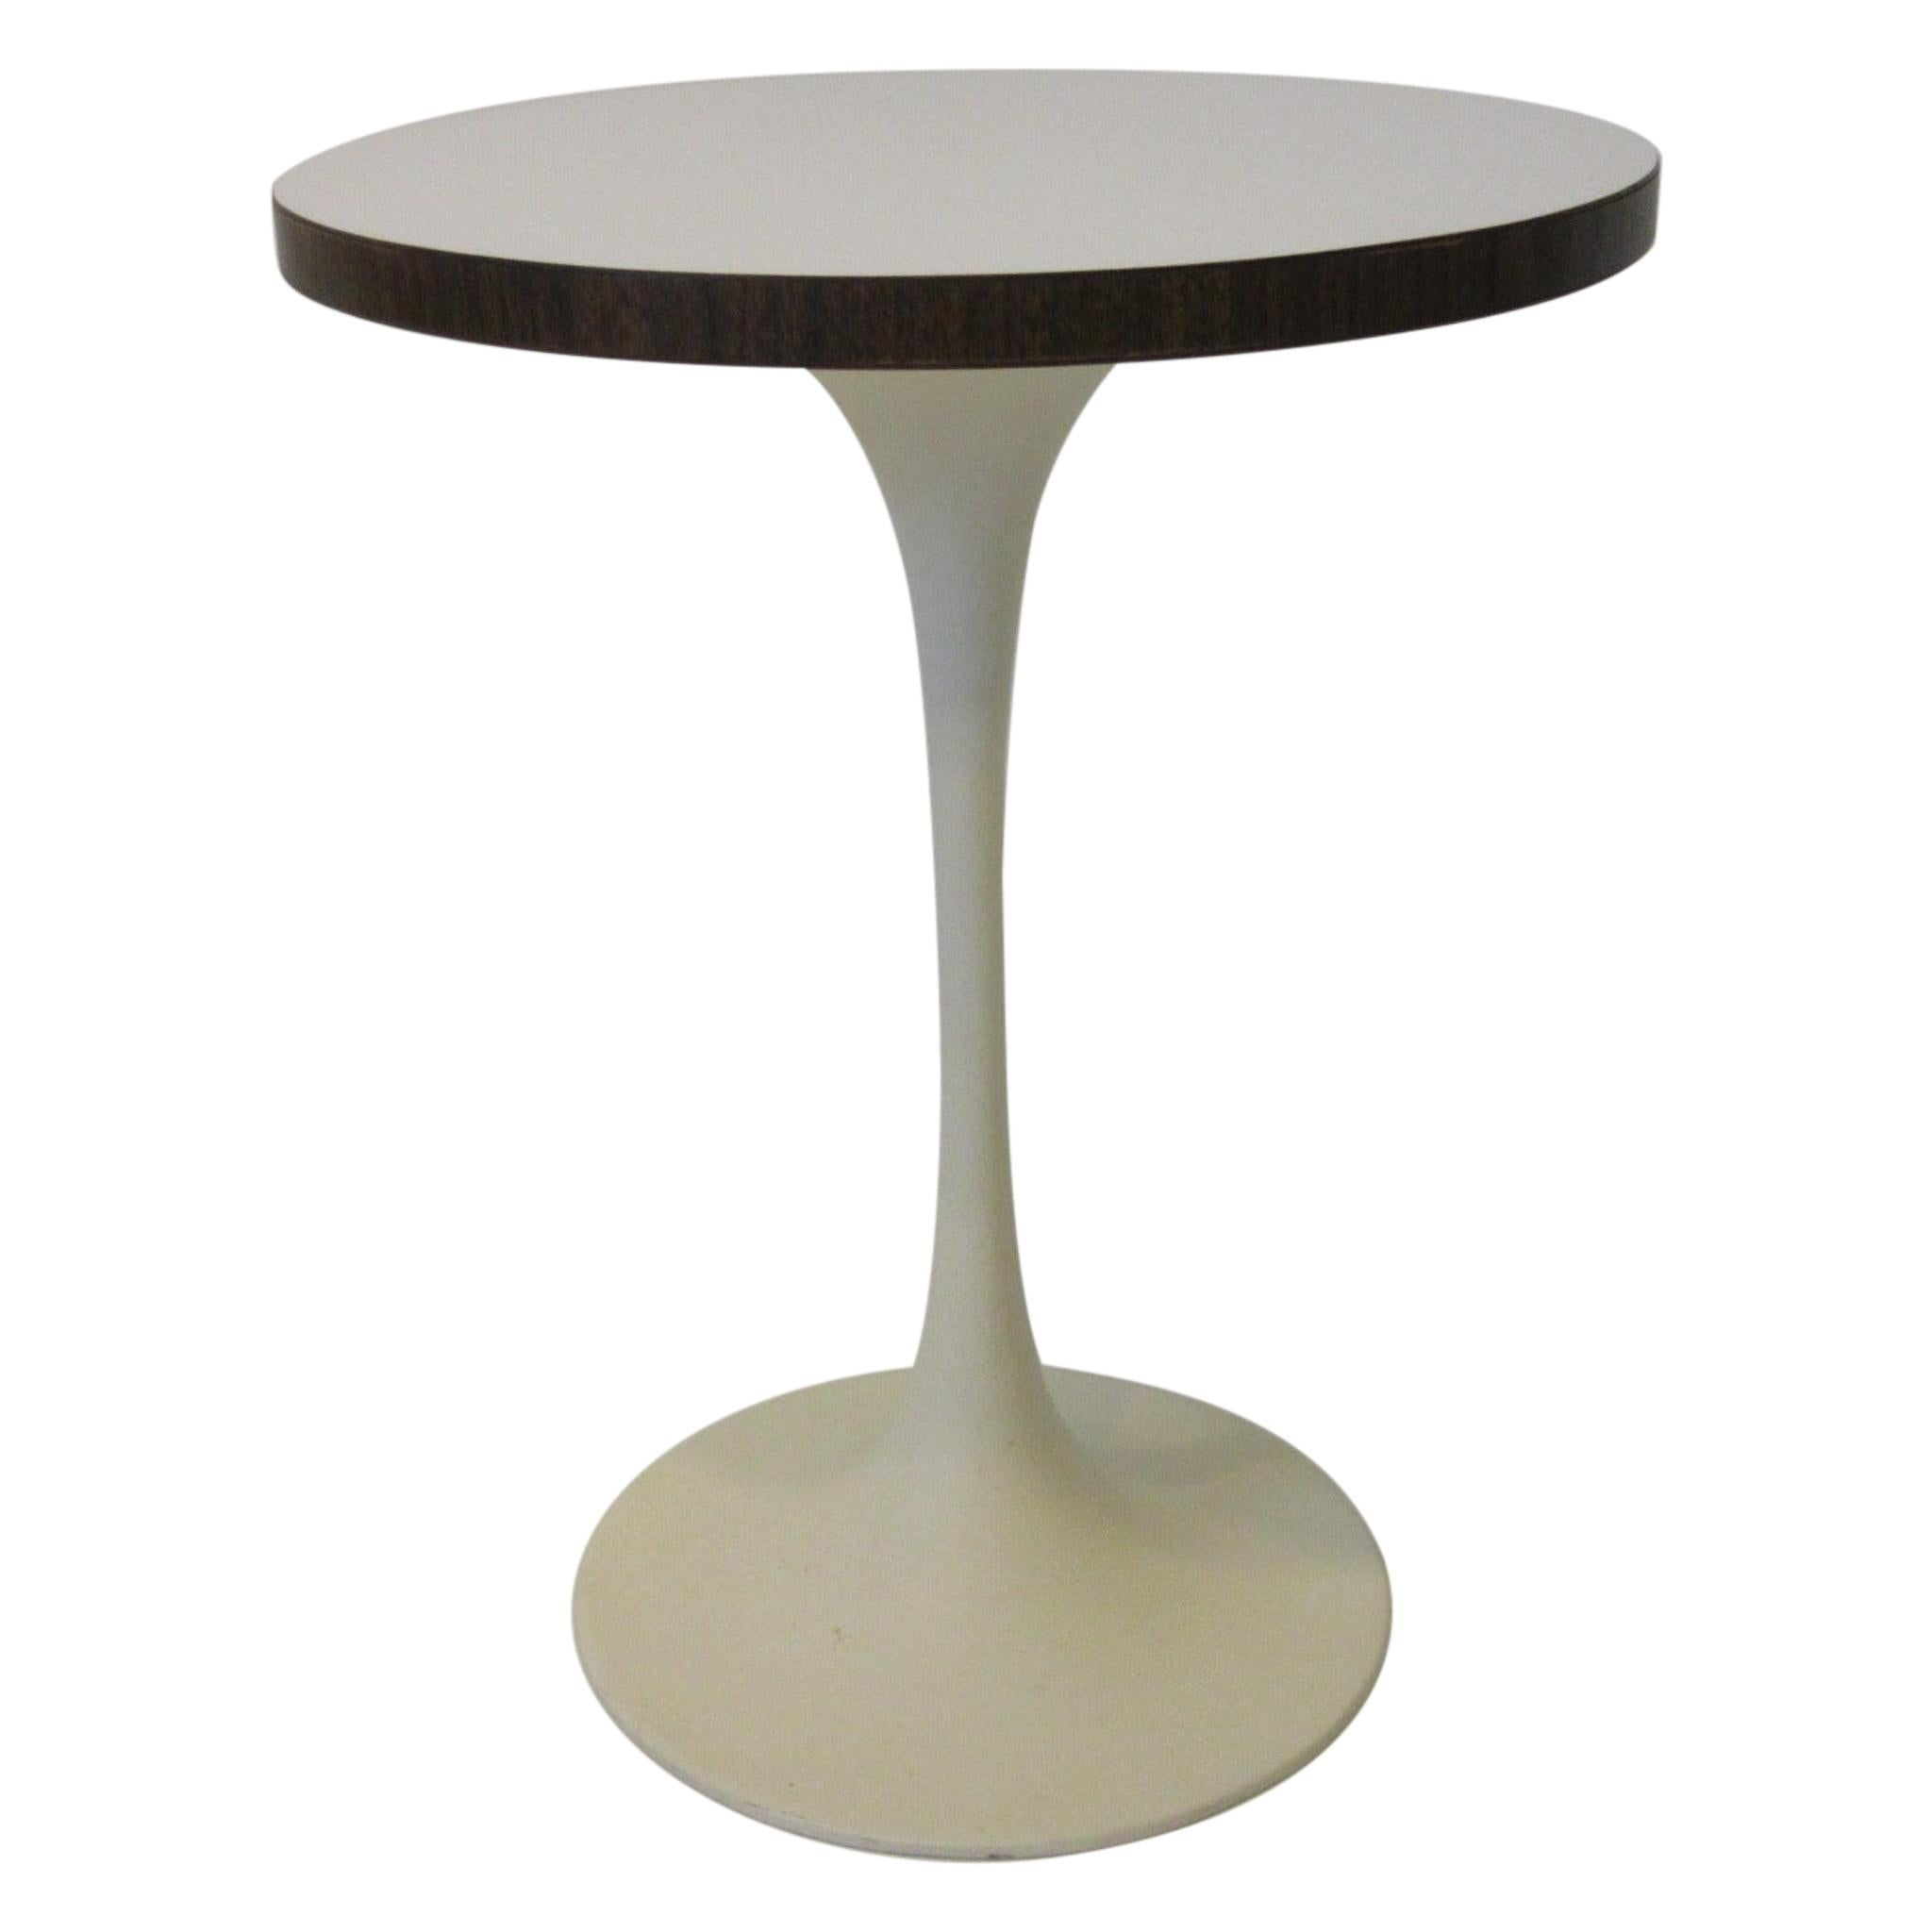 Tulip Side Table by Maurice Burke in the Manner of Knoll